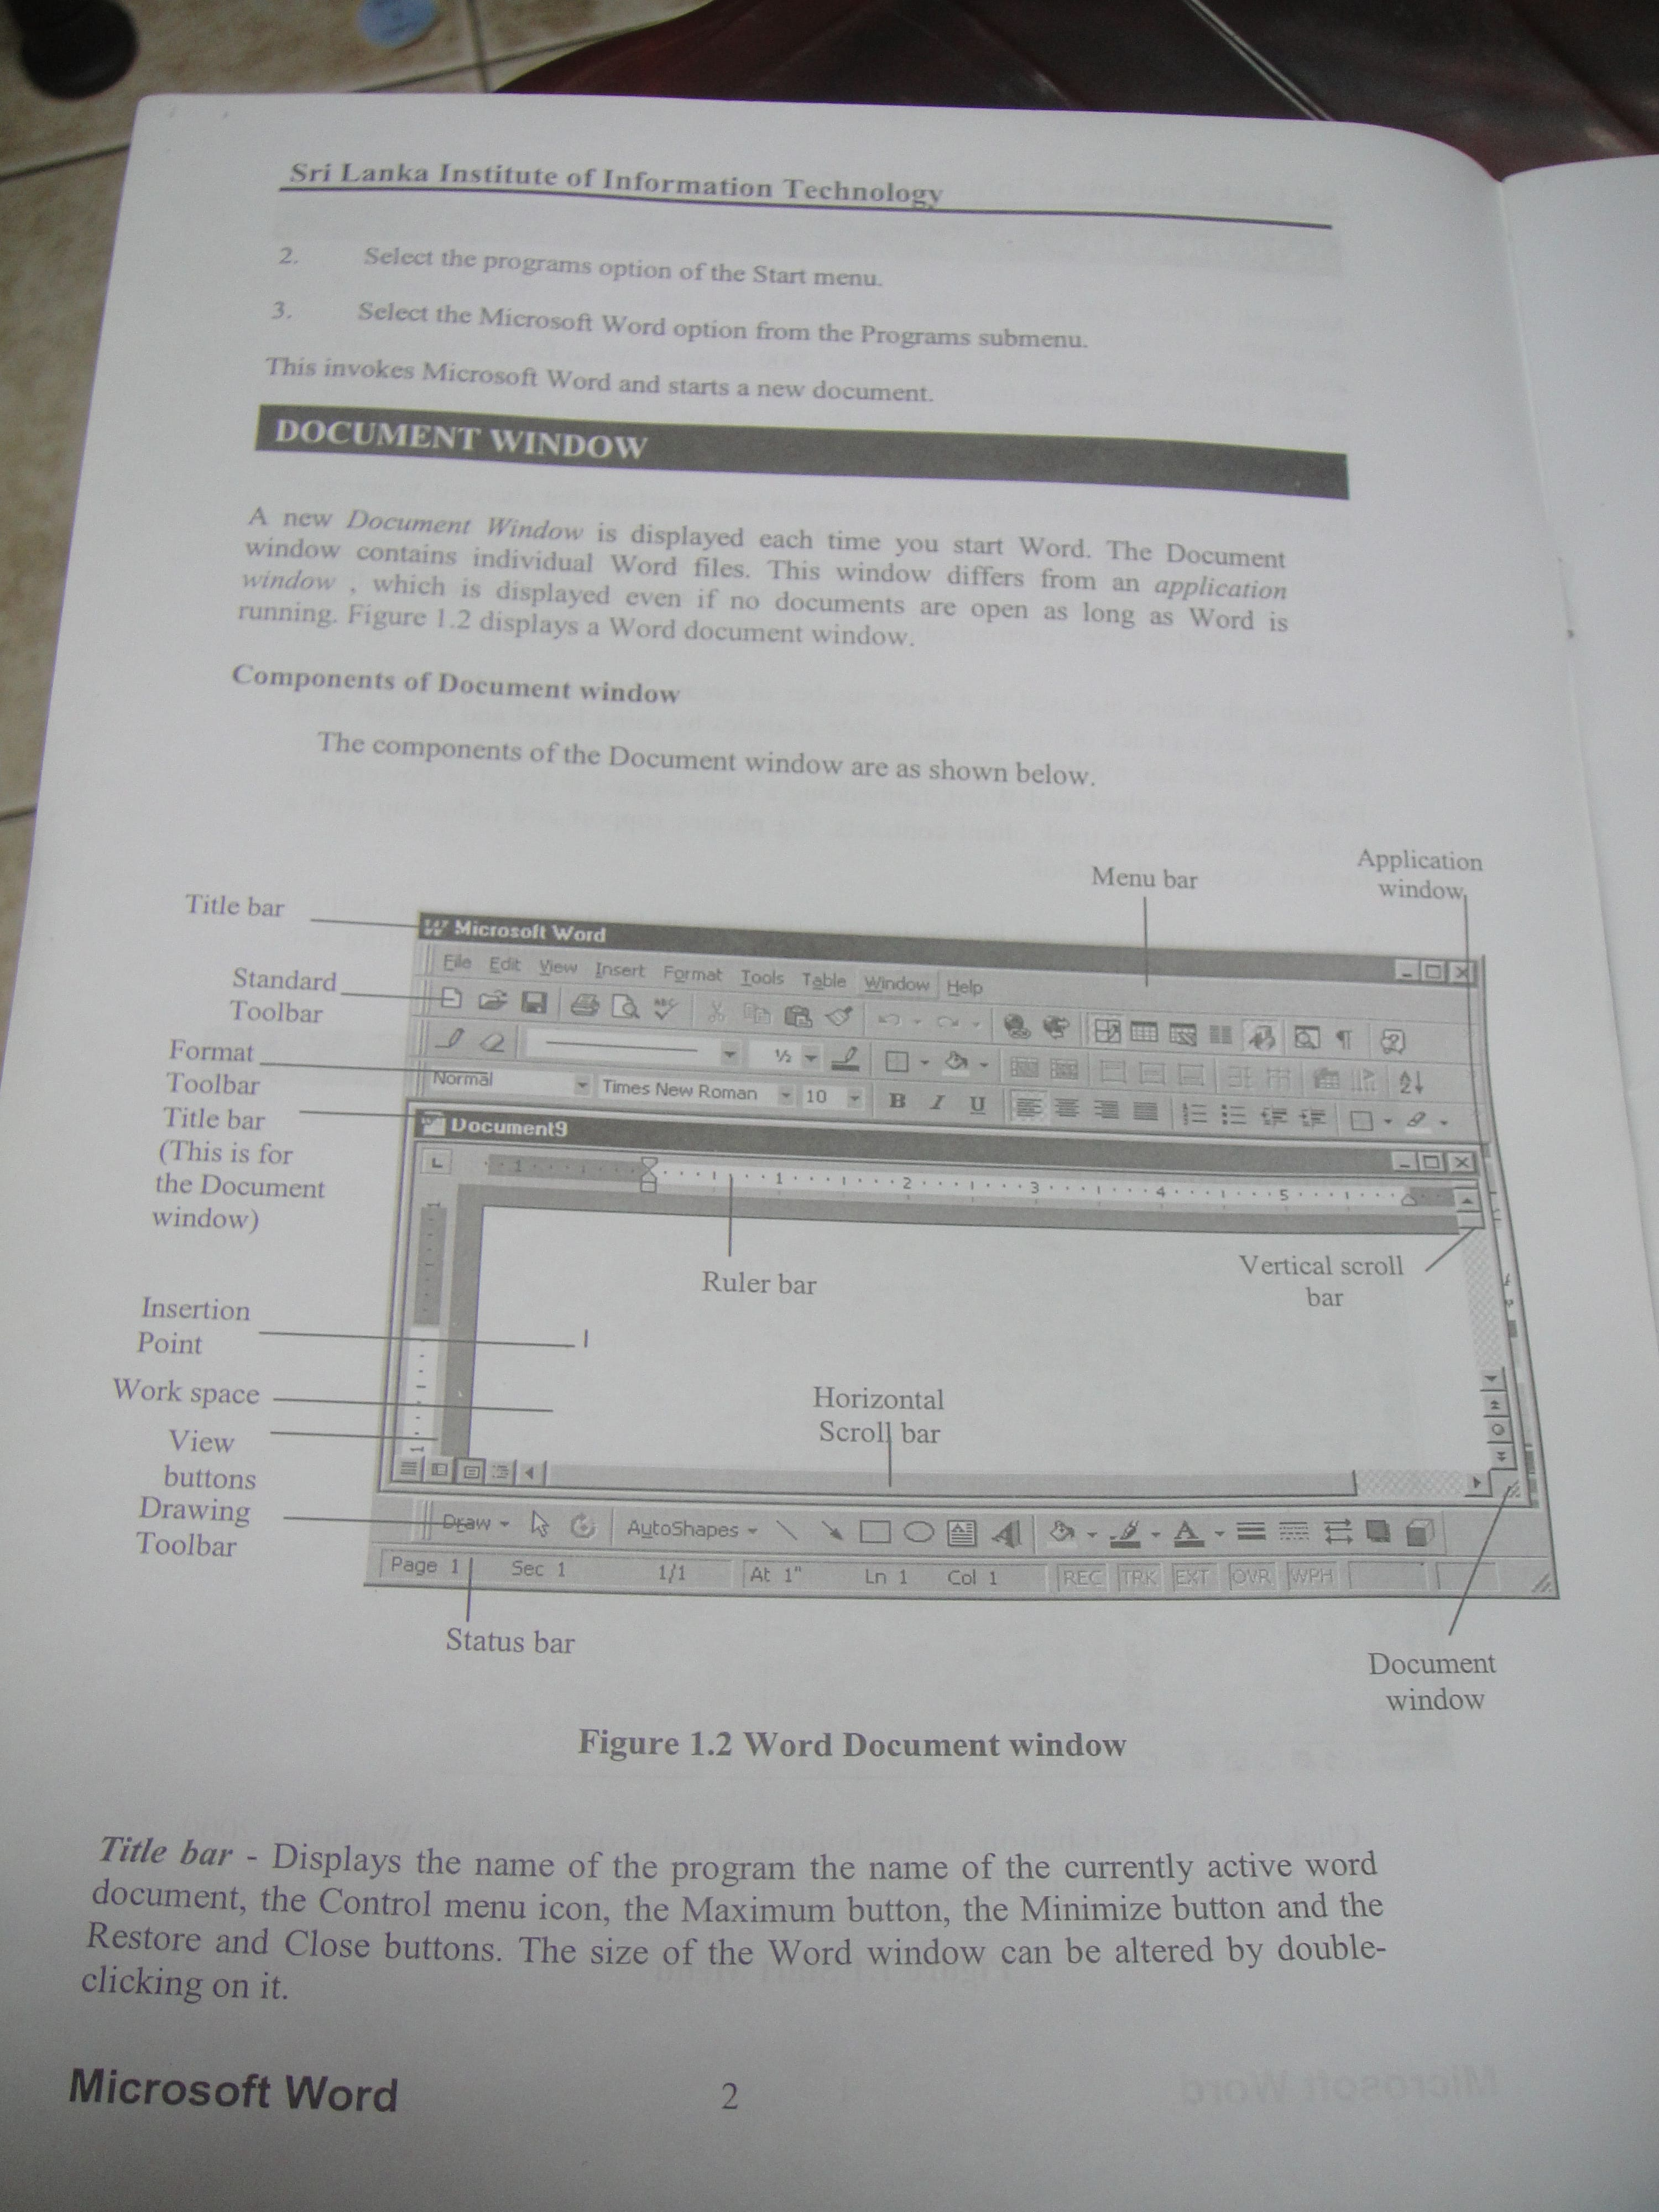 graphic design and ms word,excel